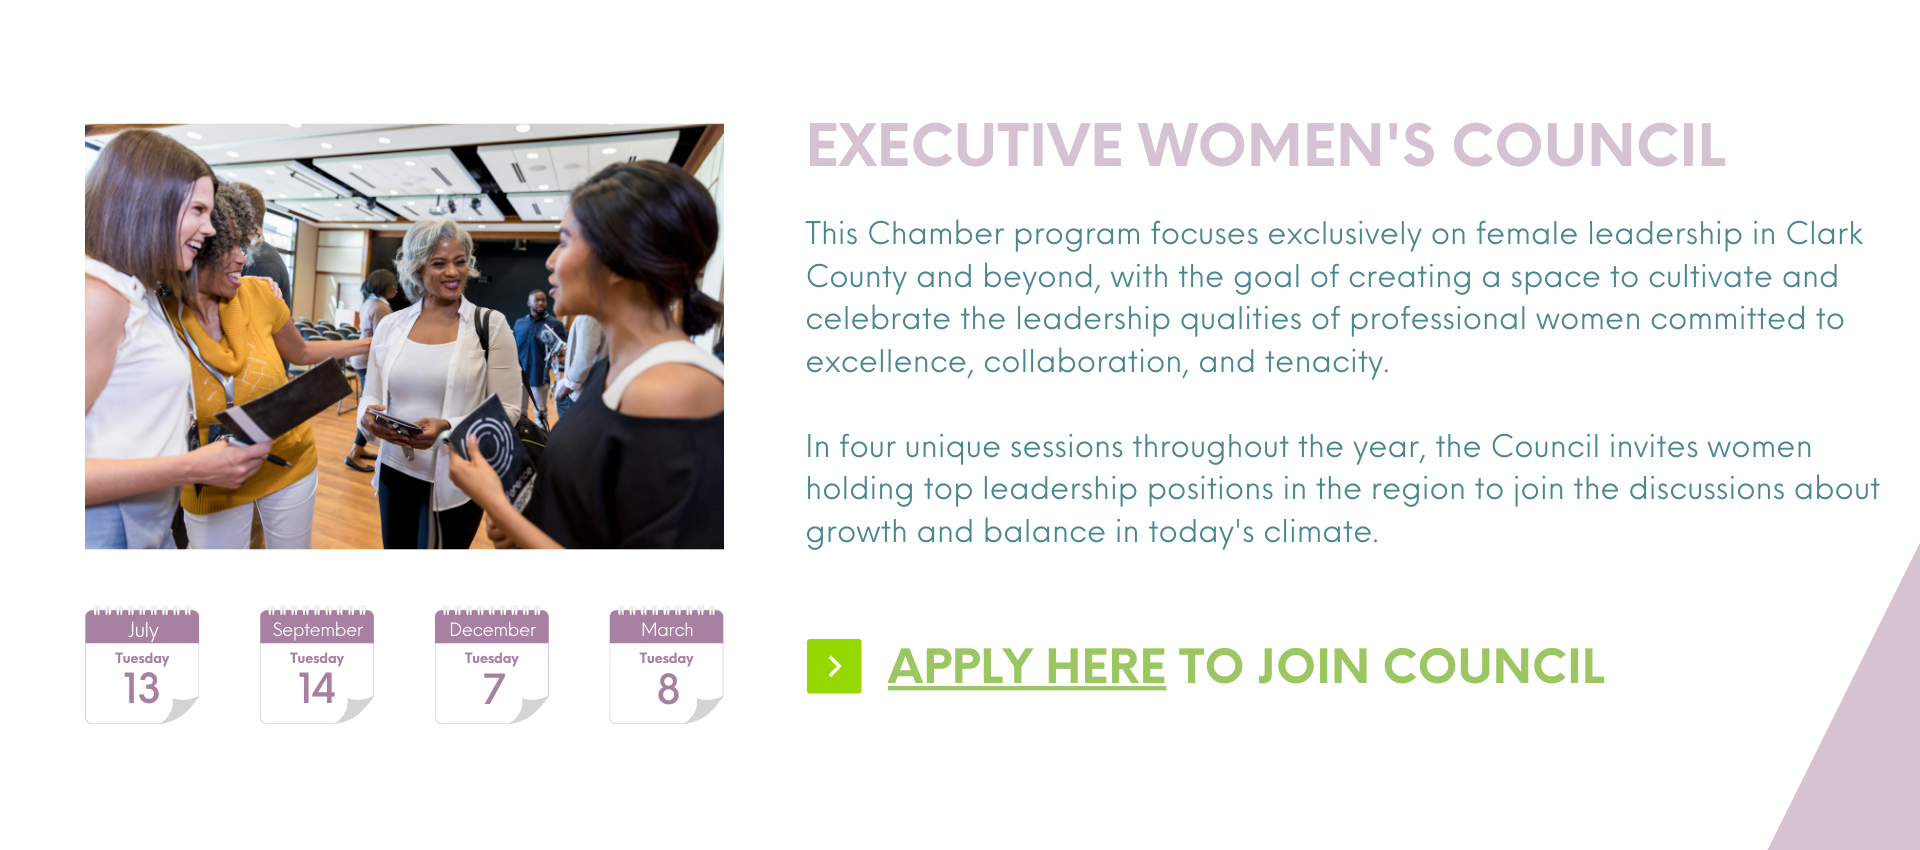 This Chamber program focuses exclusively on female leadership in Clark County and beyond, with the goal of creating a space to cultivate and celebrate the leadership qualities of professional women committed to excellence, collaboration, and tenacity. Executive Women's council Apply here to join council  In four unique sessions throughout the year, the Council invites women holding top leadership positions in the region to join the discussions about growth and balance in today's climate.